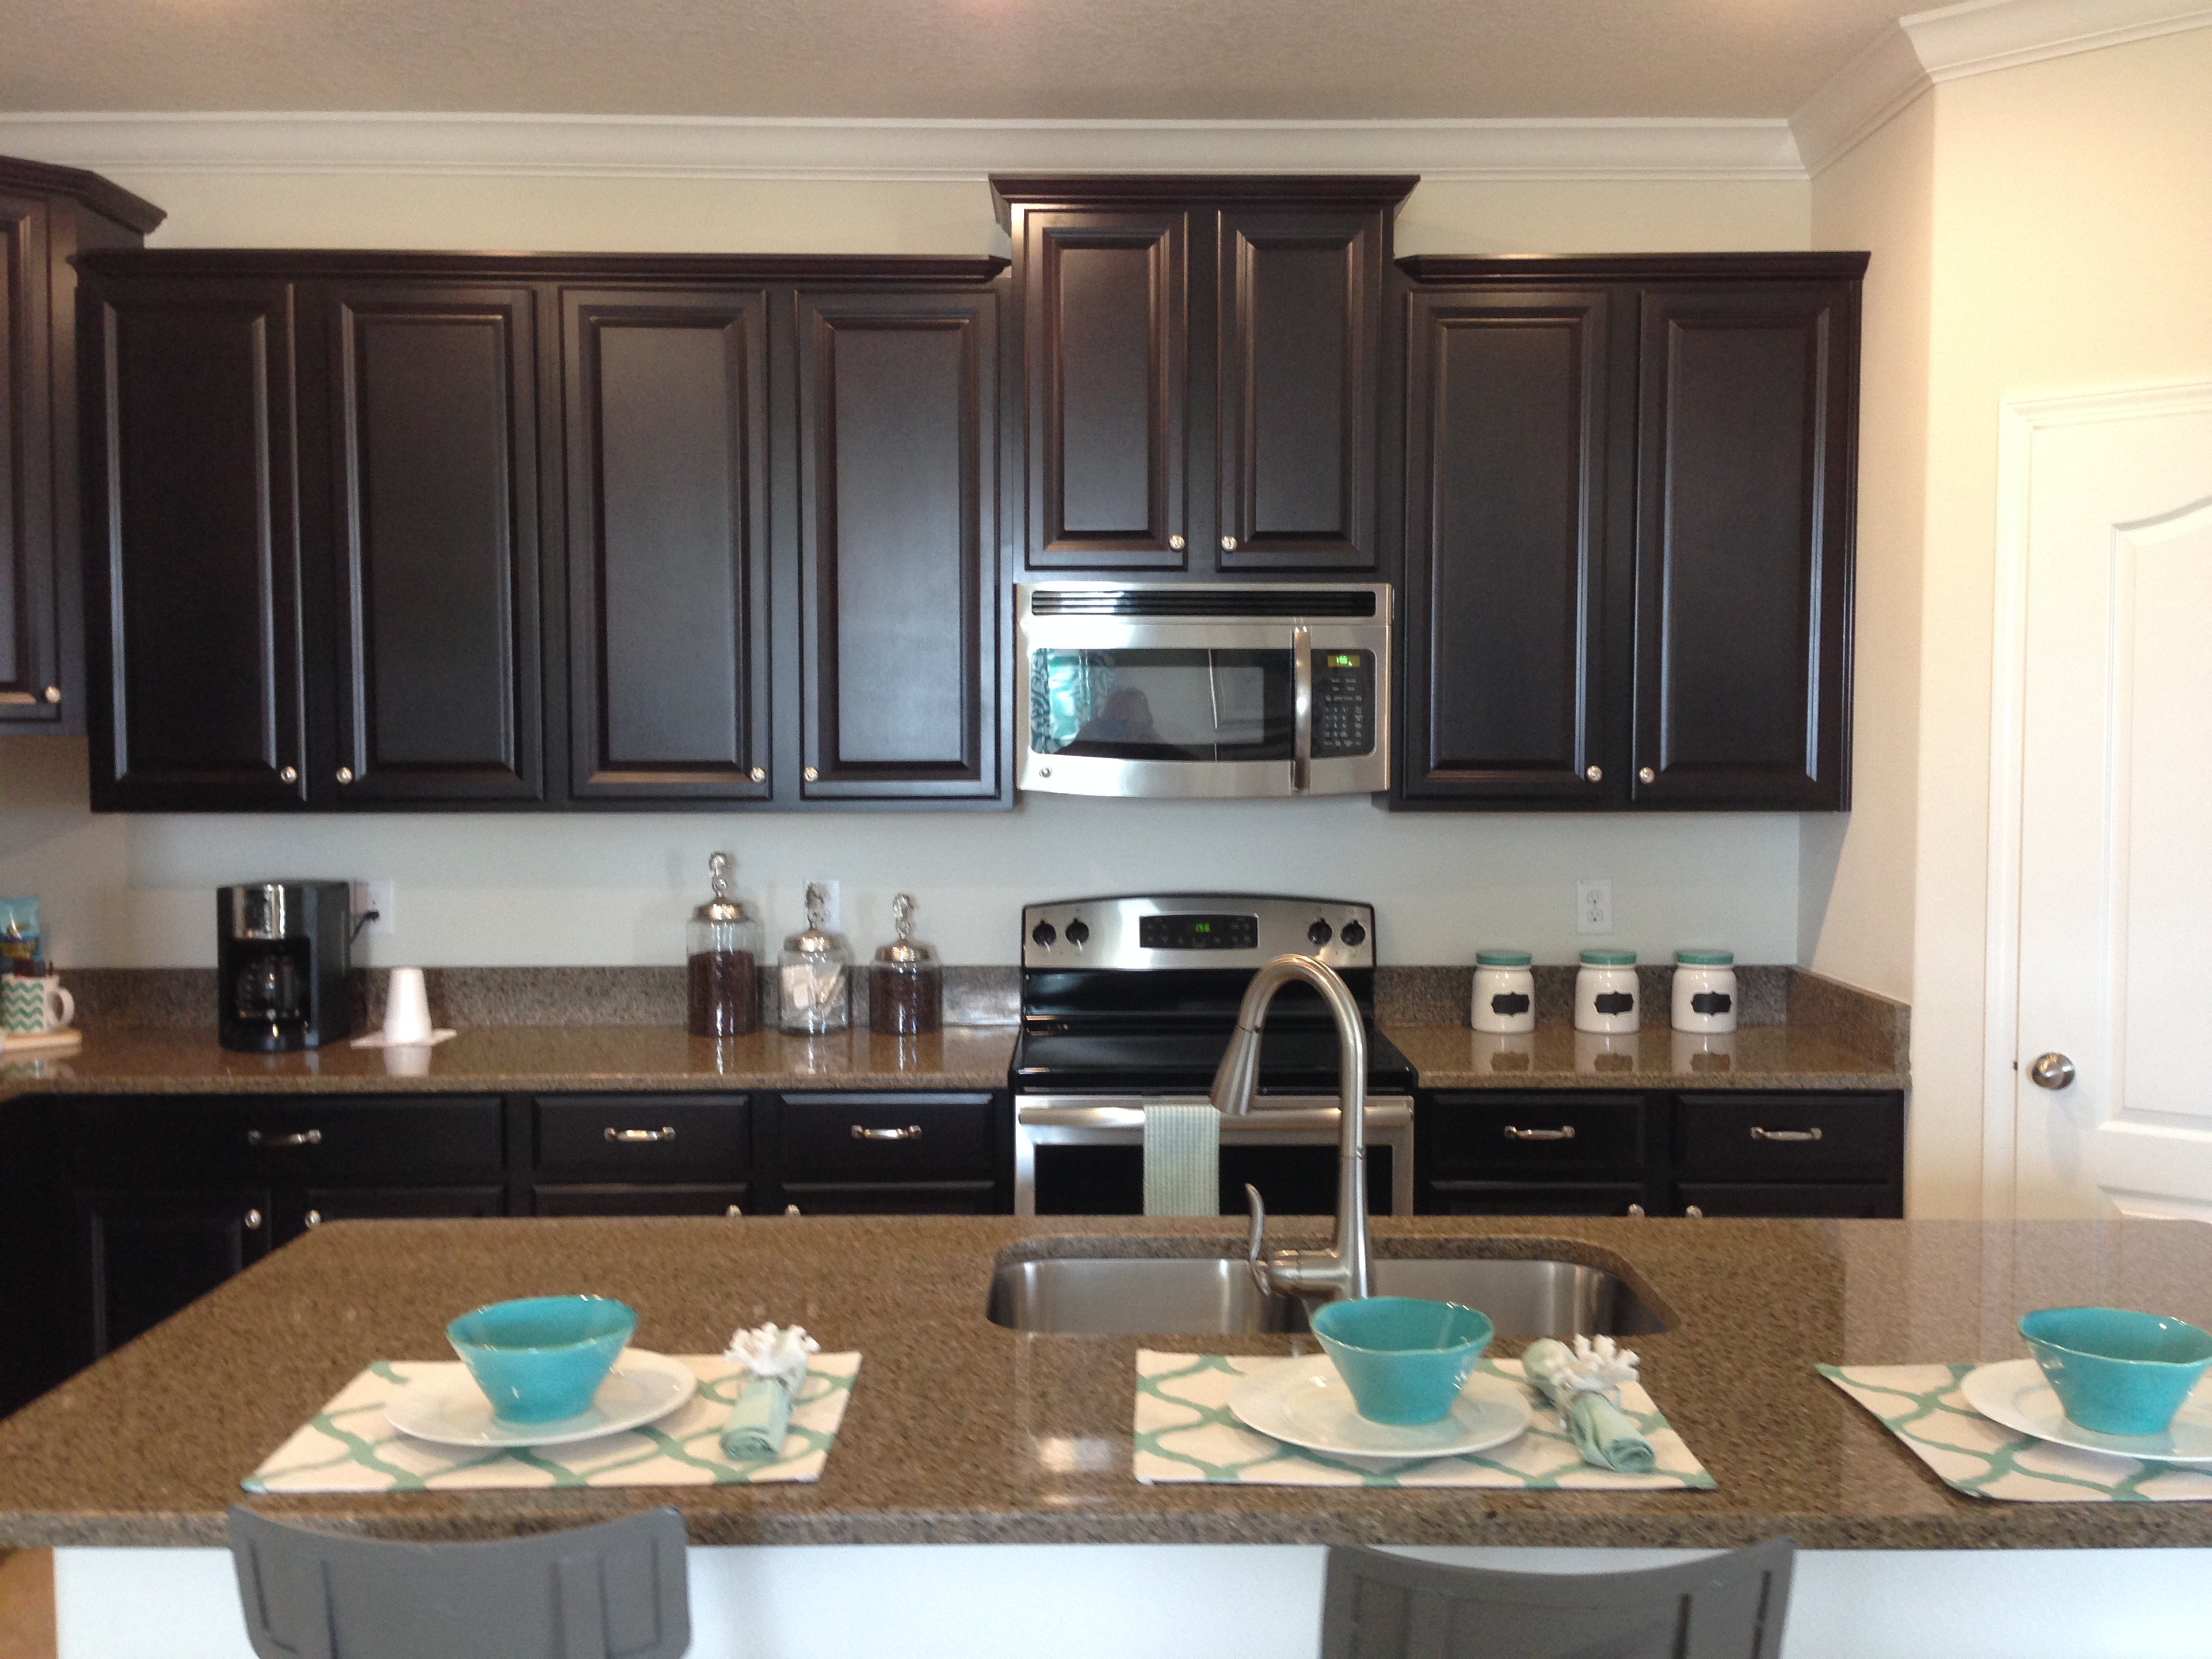 You are currently viewing Luxury Homes Riverview Fl Five minutes from I75 interstate Call me for the newest specials